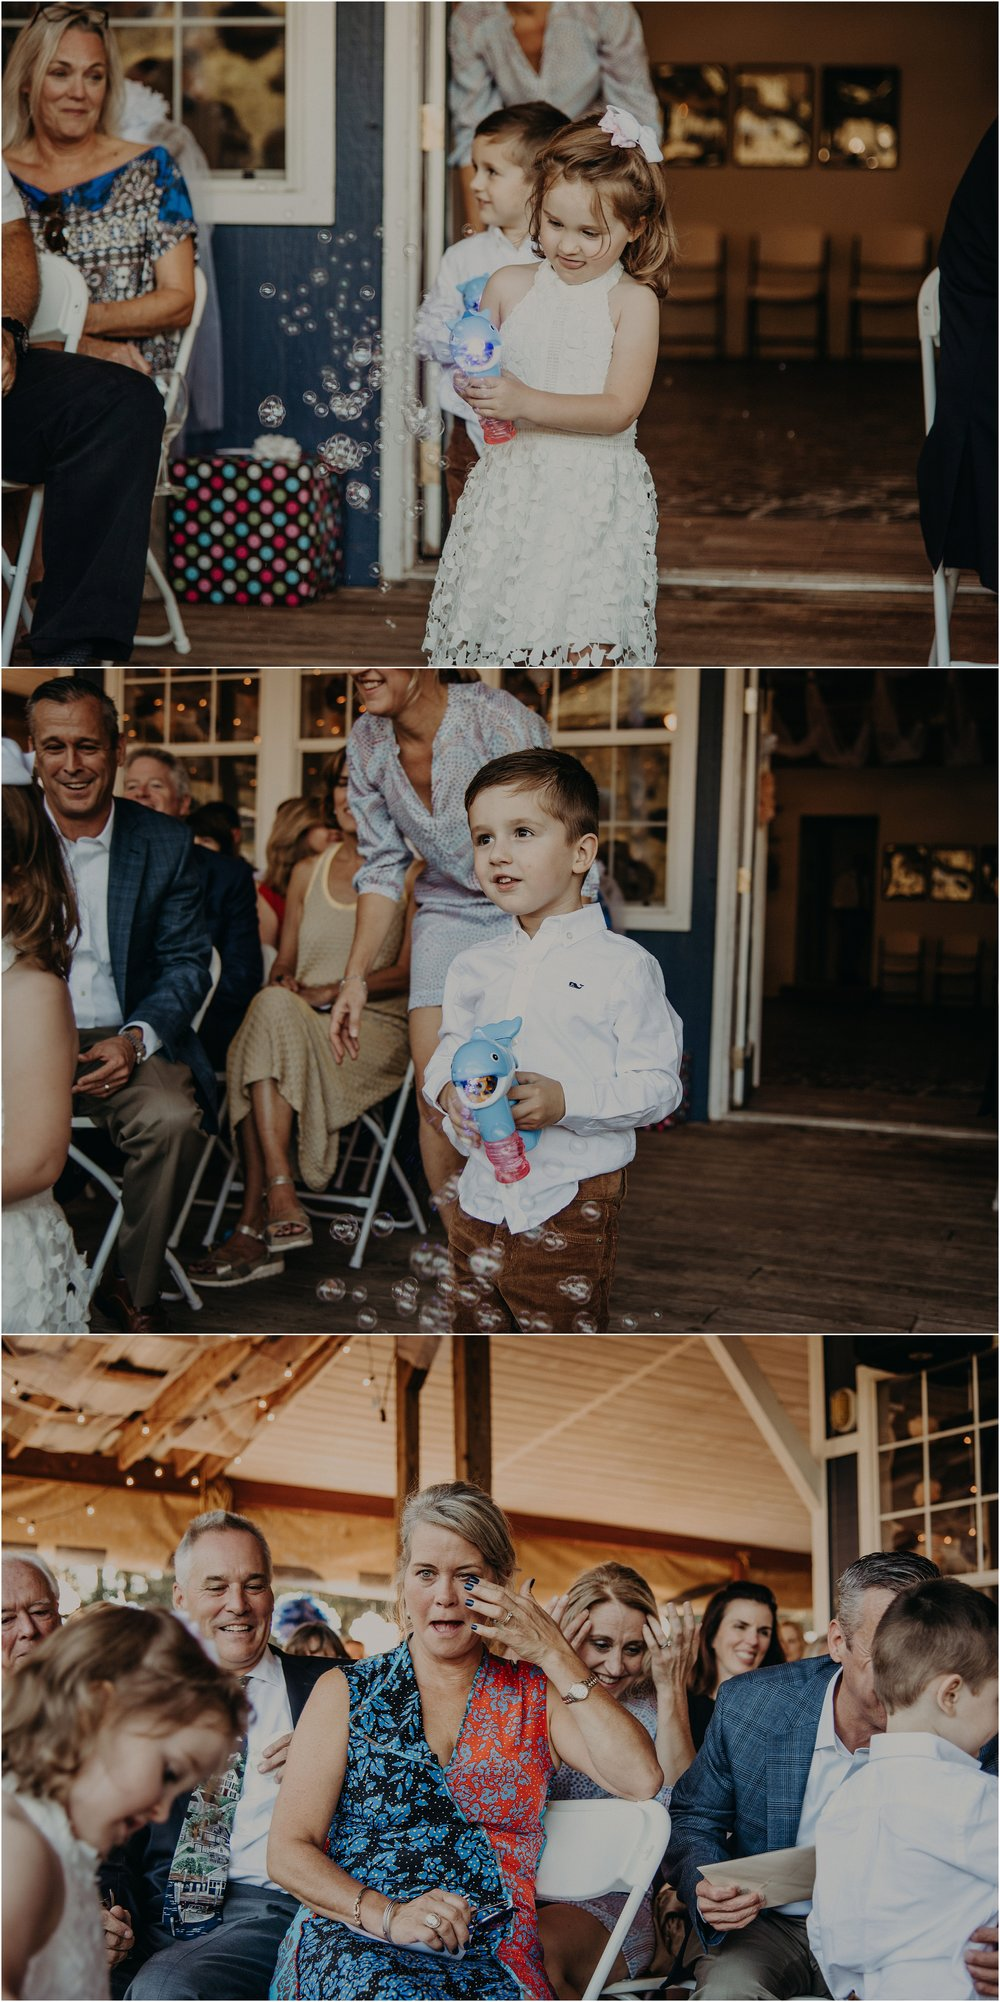 Ring bearer and flower girl blow bubbles as they walk down the aisle